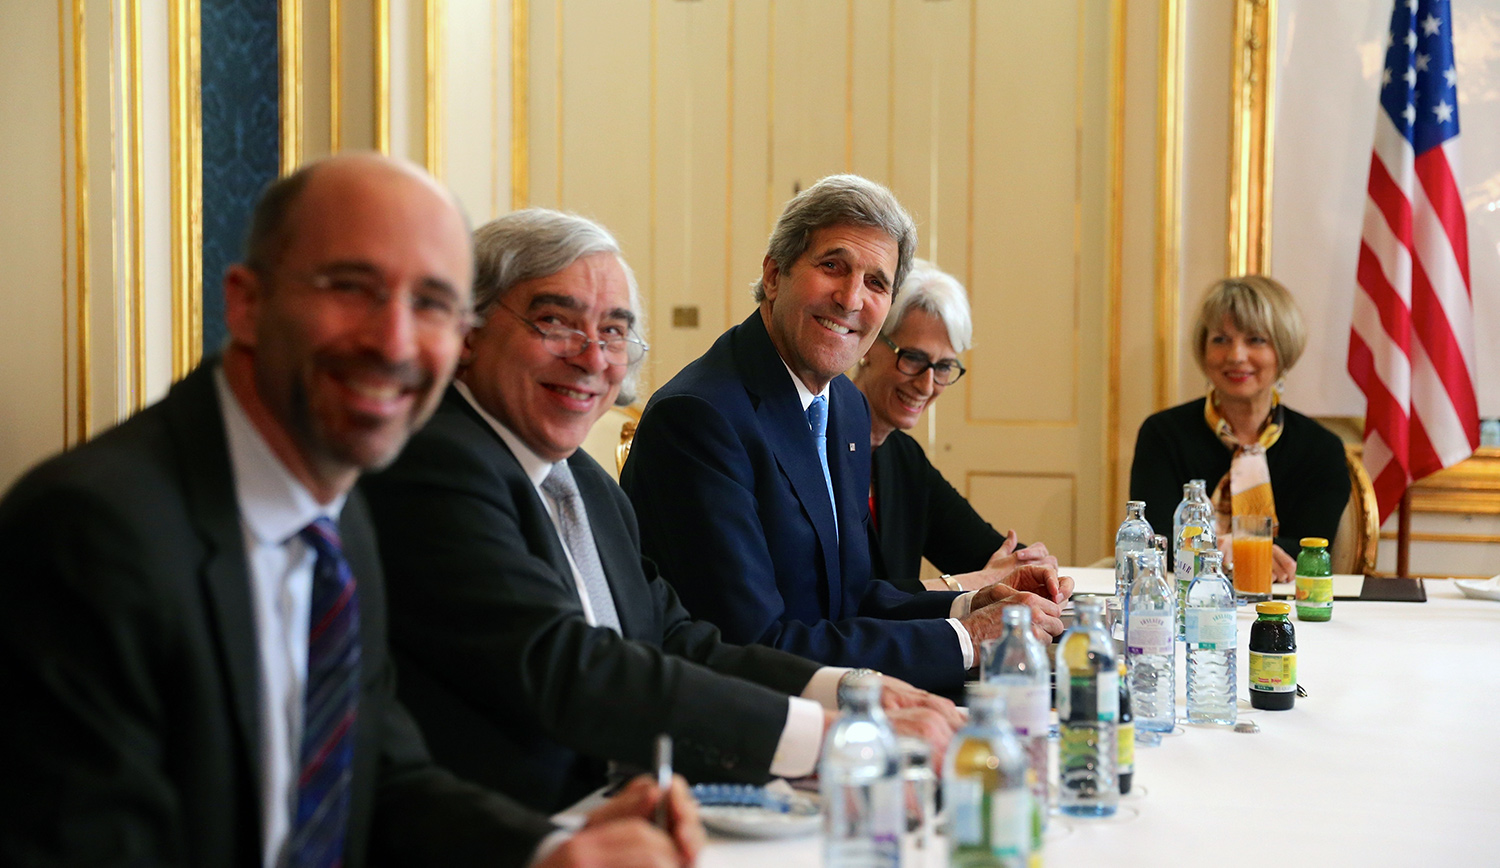 Robert Malley, then-National Security Council senior director for Iran, Iraq, Syria, and the Gulf States, Secretary of Energy Ernest Moniz, Secretary of State John Kerry, and under-secretary for political affairs Wendy Sherman attend the Iran nuclear talks at a hotel in Vienna, Austria on June 30, 2015. POOL/Siamek Ebrahimi/Anadolu Agency/Getty Images.